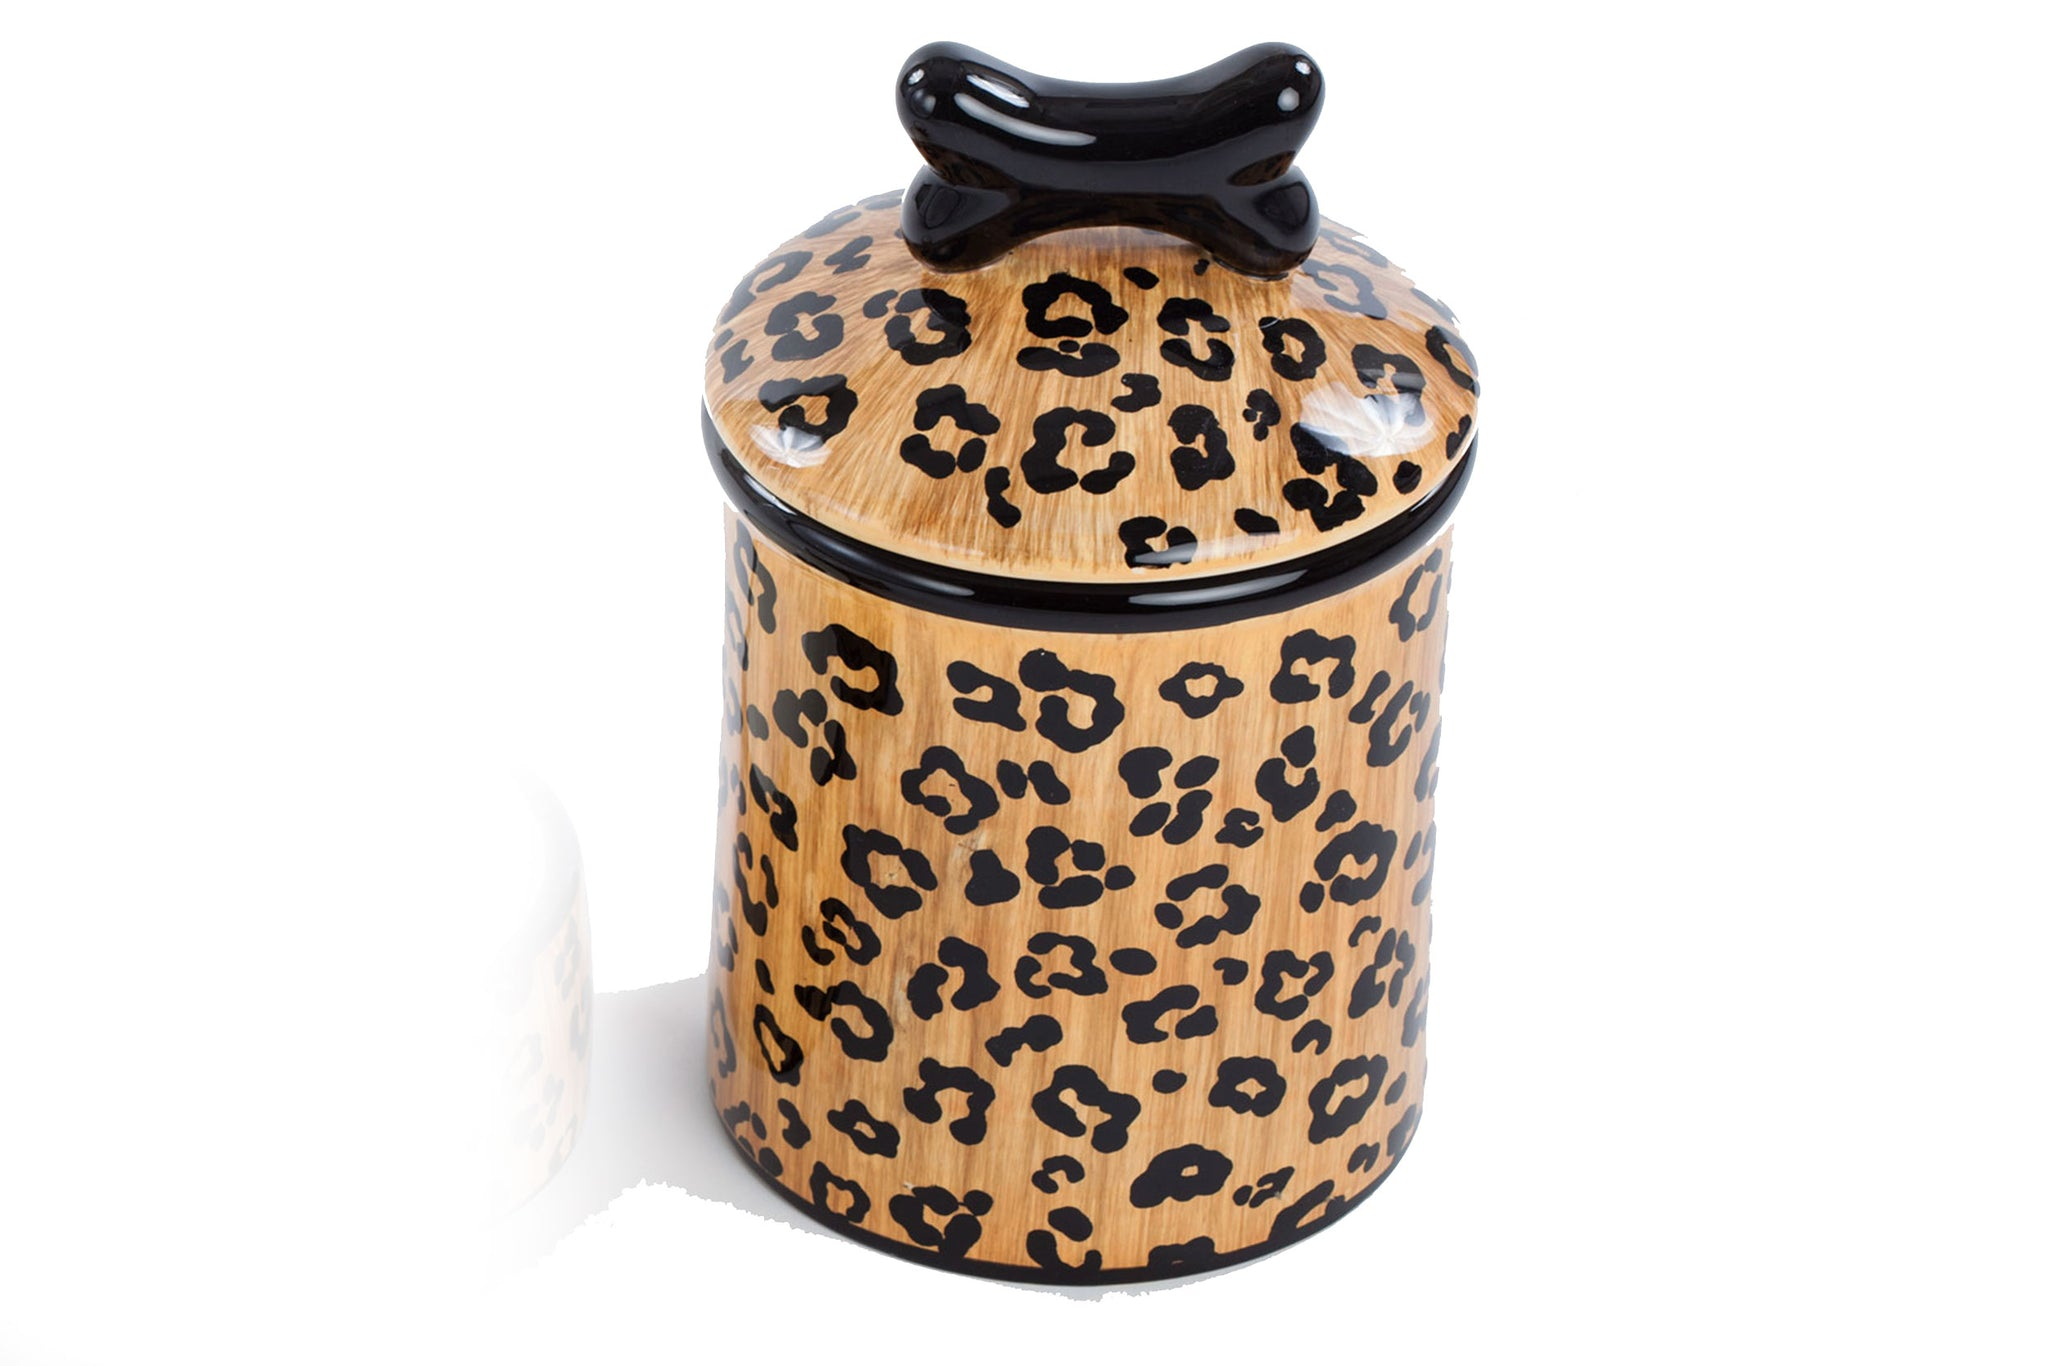 Leopard Treat Jar - Ceramic Treat Jar